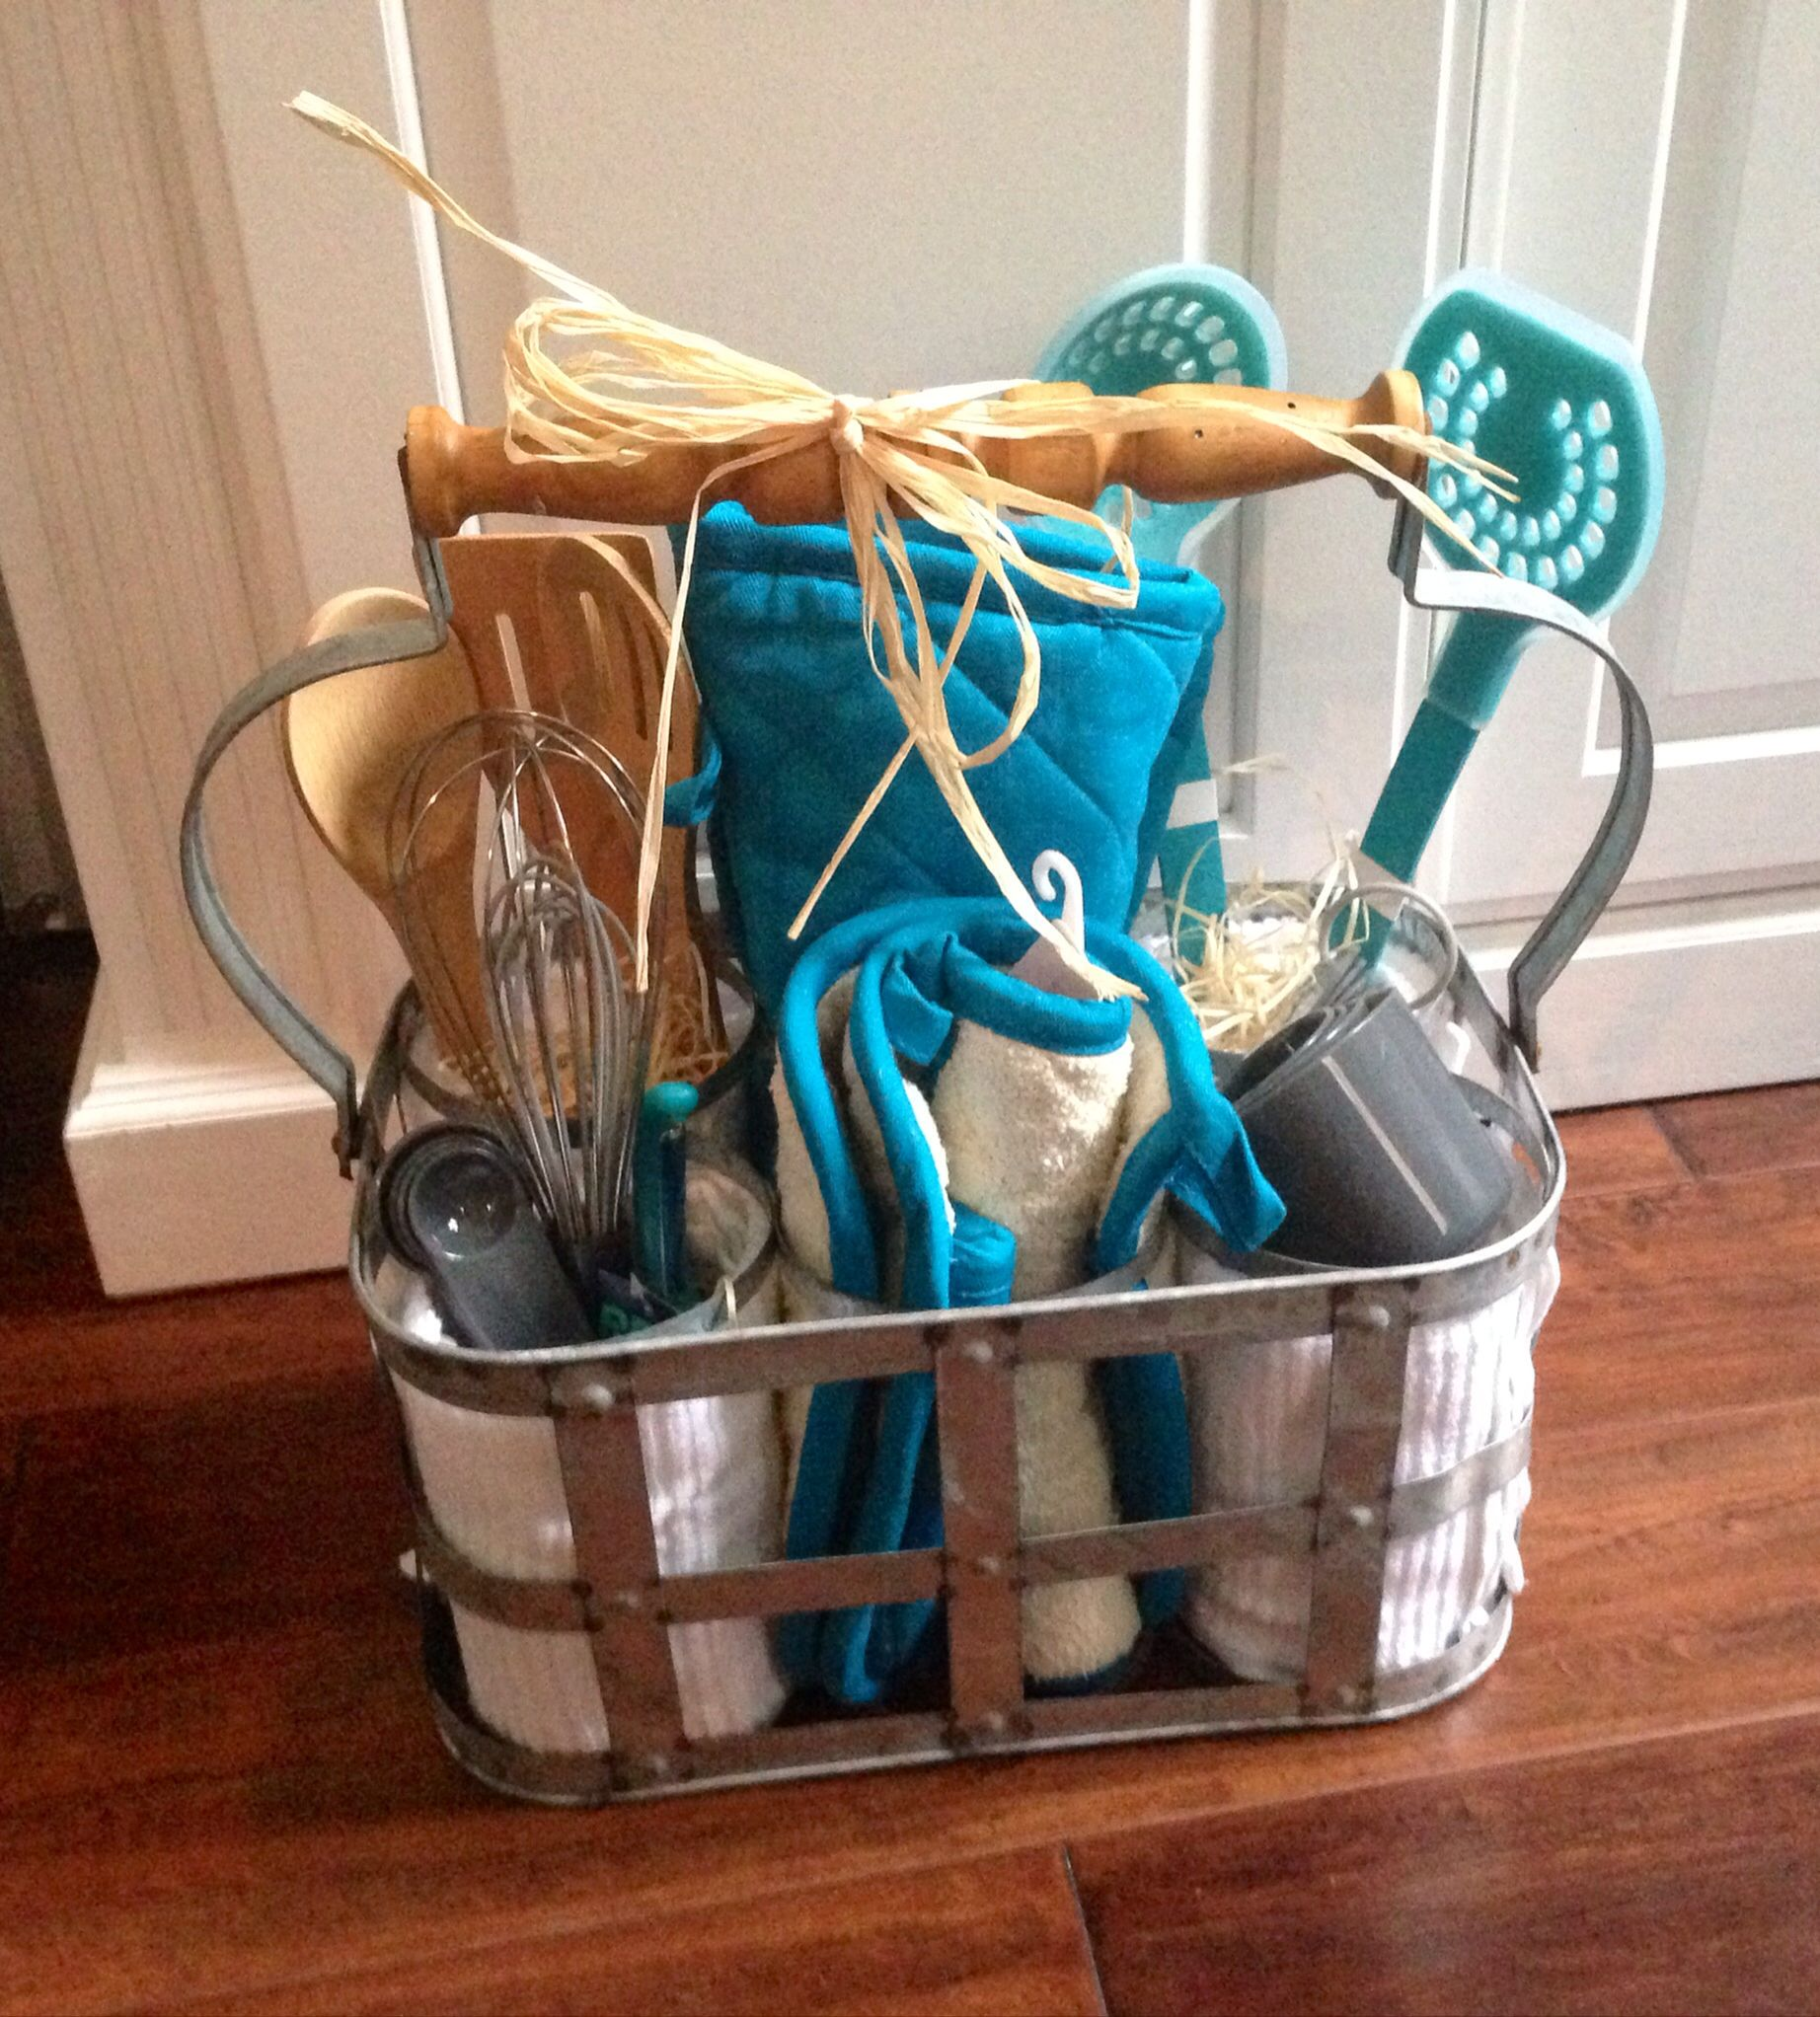 Bridal shower gift basket i made for a friend with